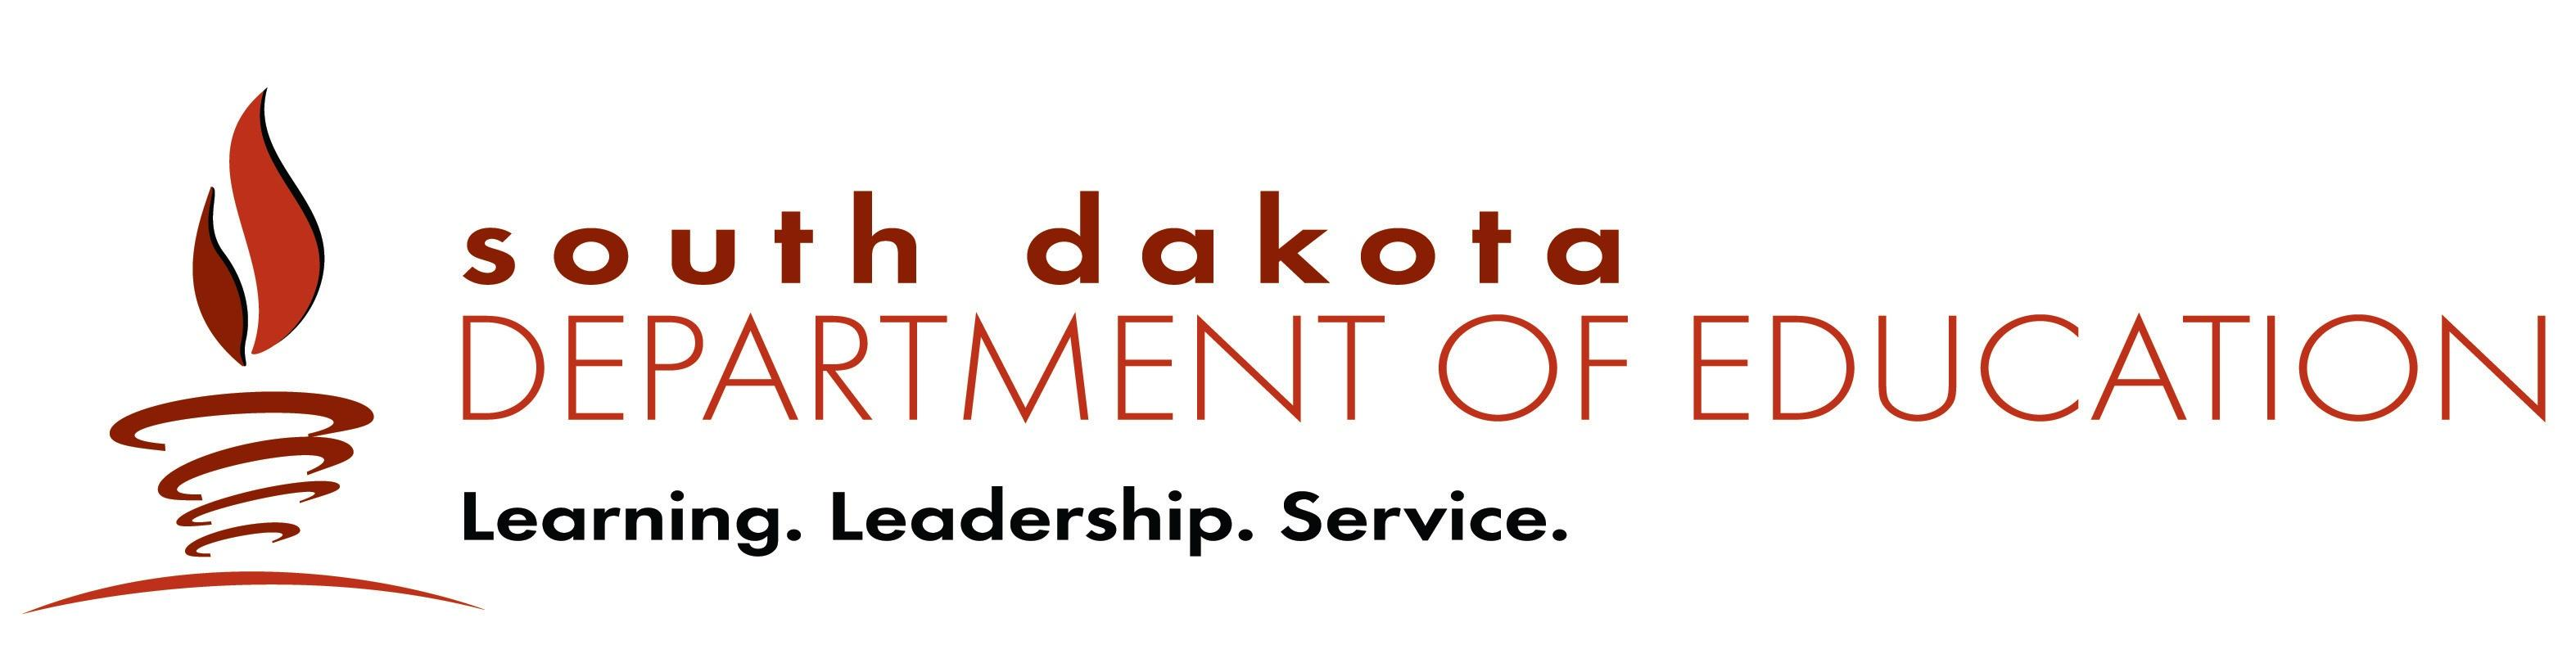 SD Department of Education - SDPB Sponsor